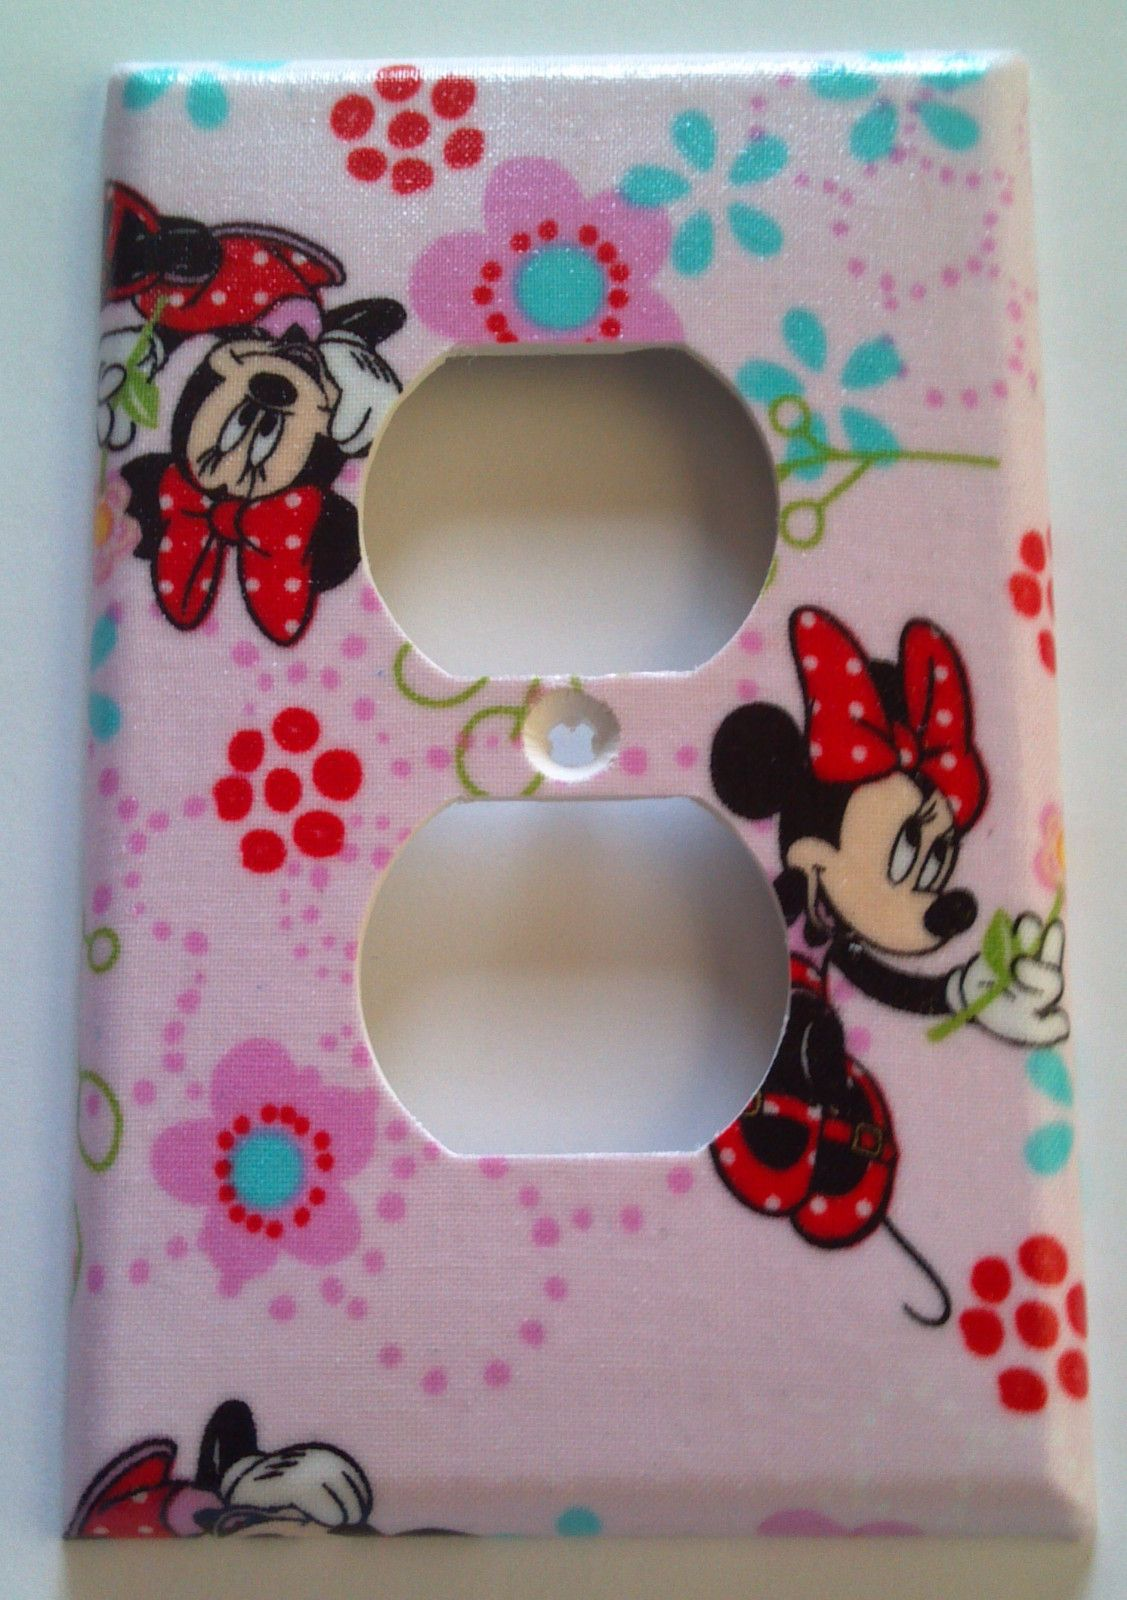 17 best images about minnie mouse bathroom ideas on pinterest